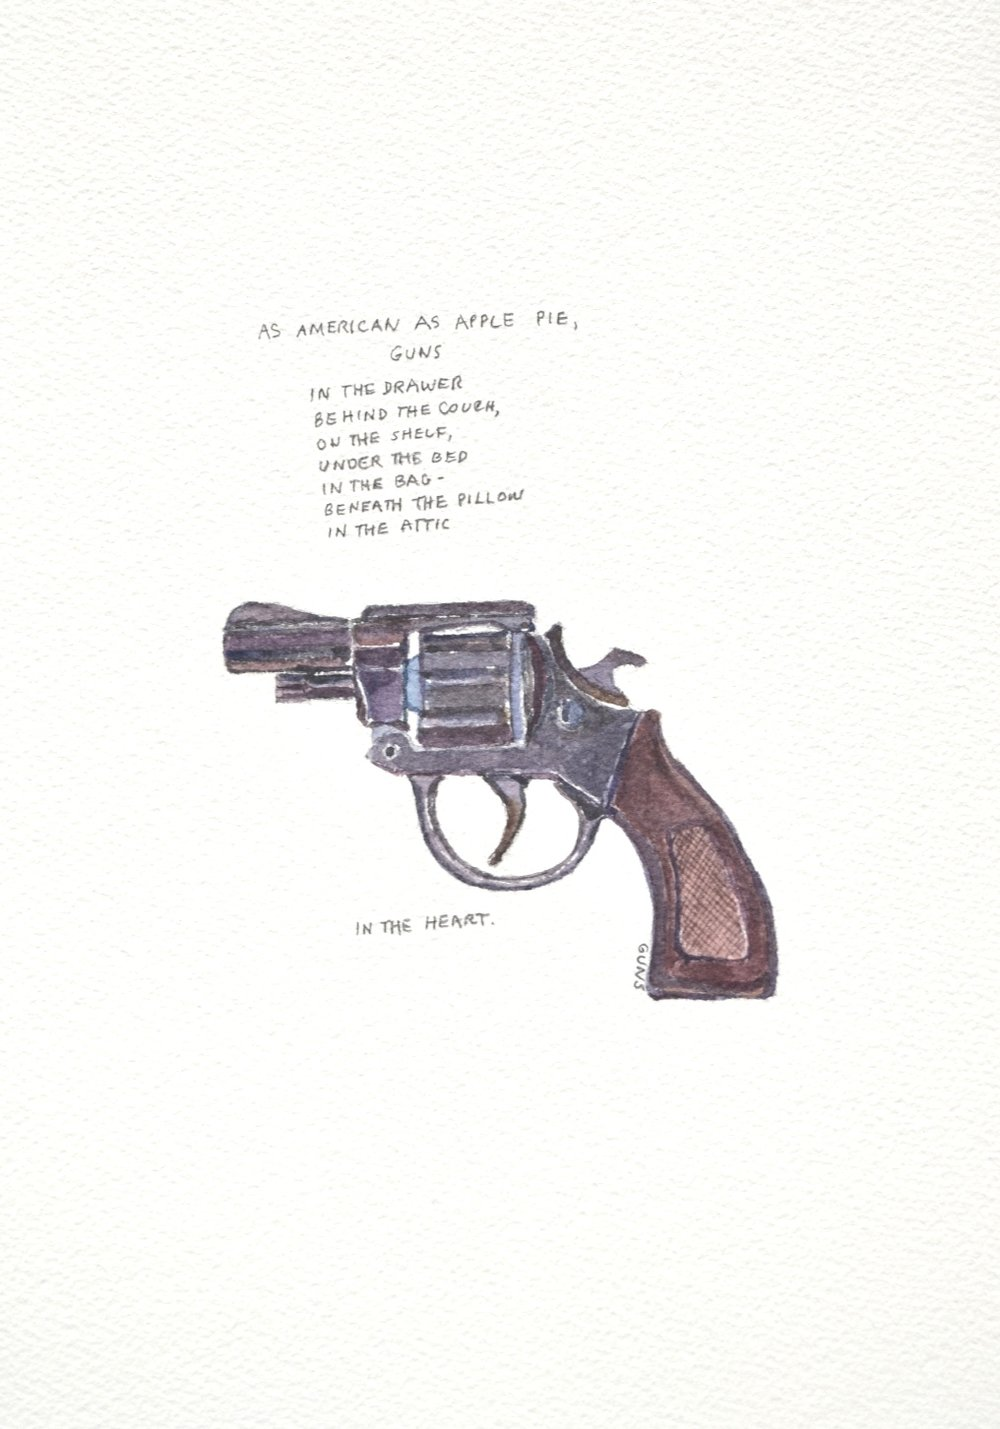 S. Sutro, Gun Series - As American as Apple Pie, watercolor+text, 15x11, 2014.JPG